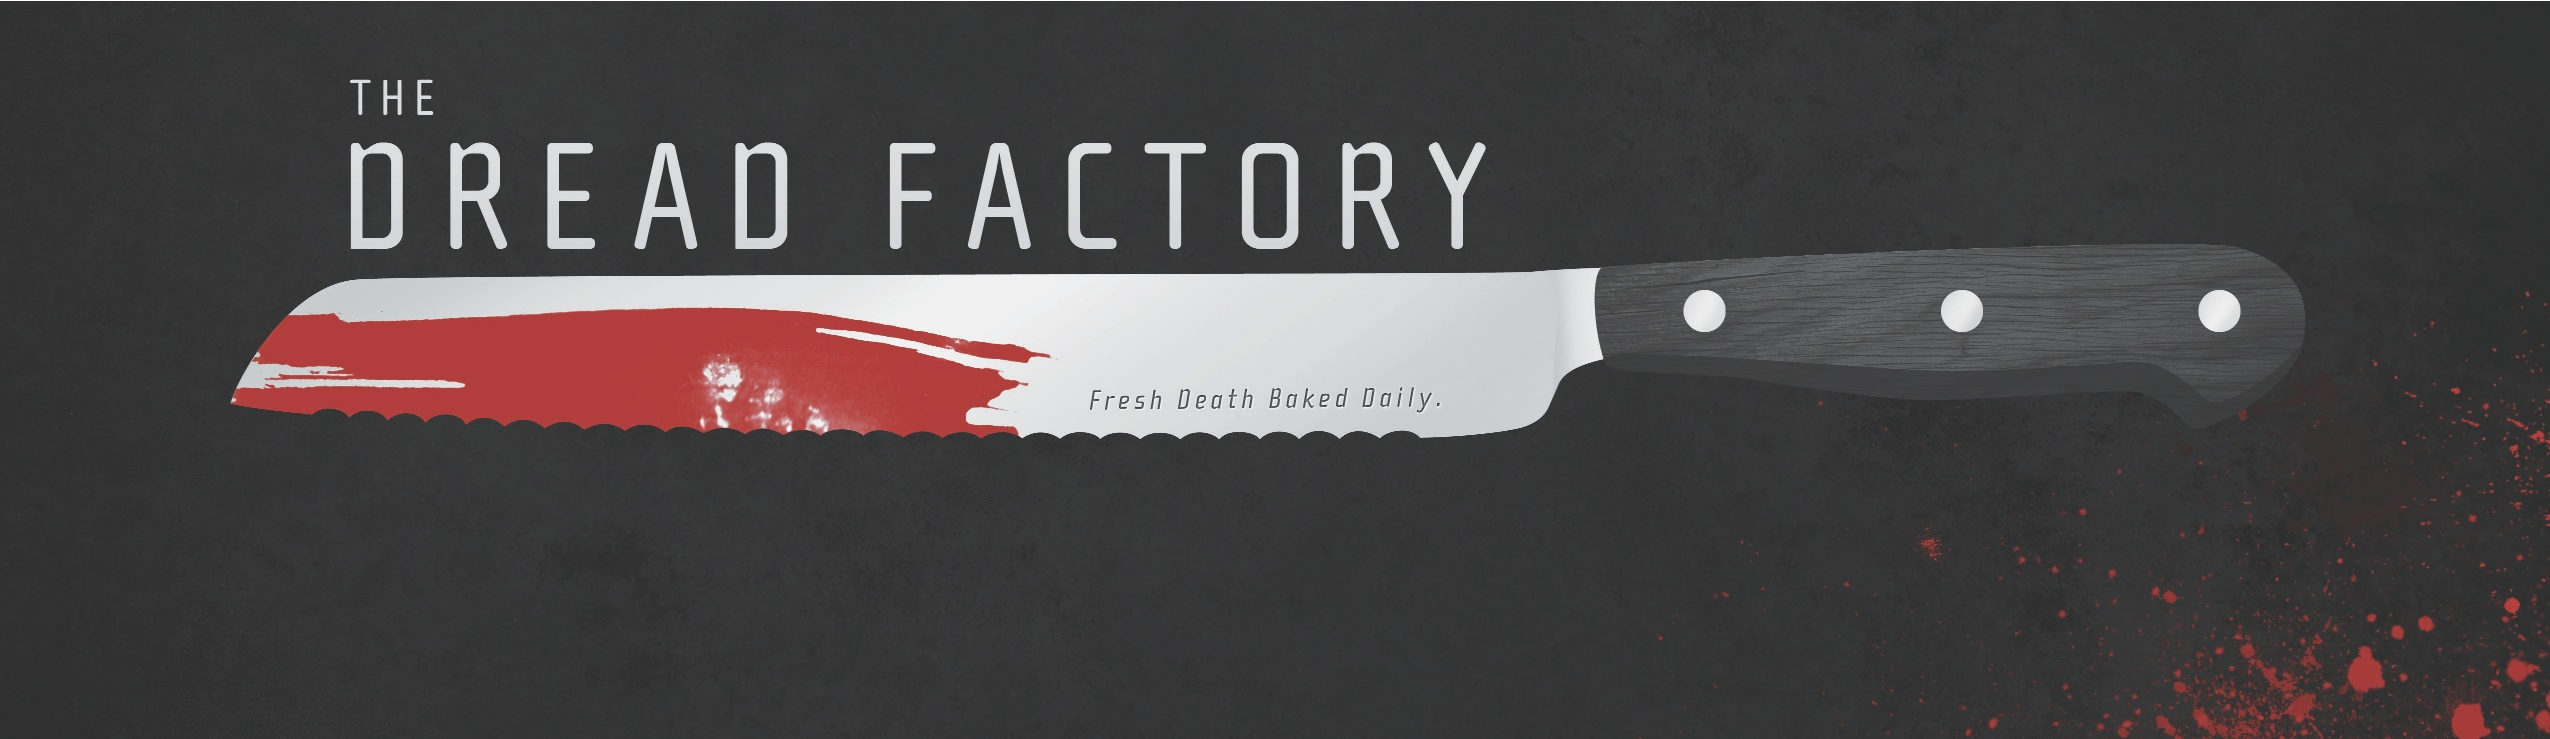 The Dread Factory